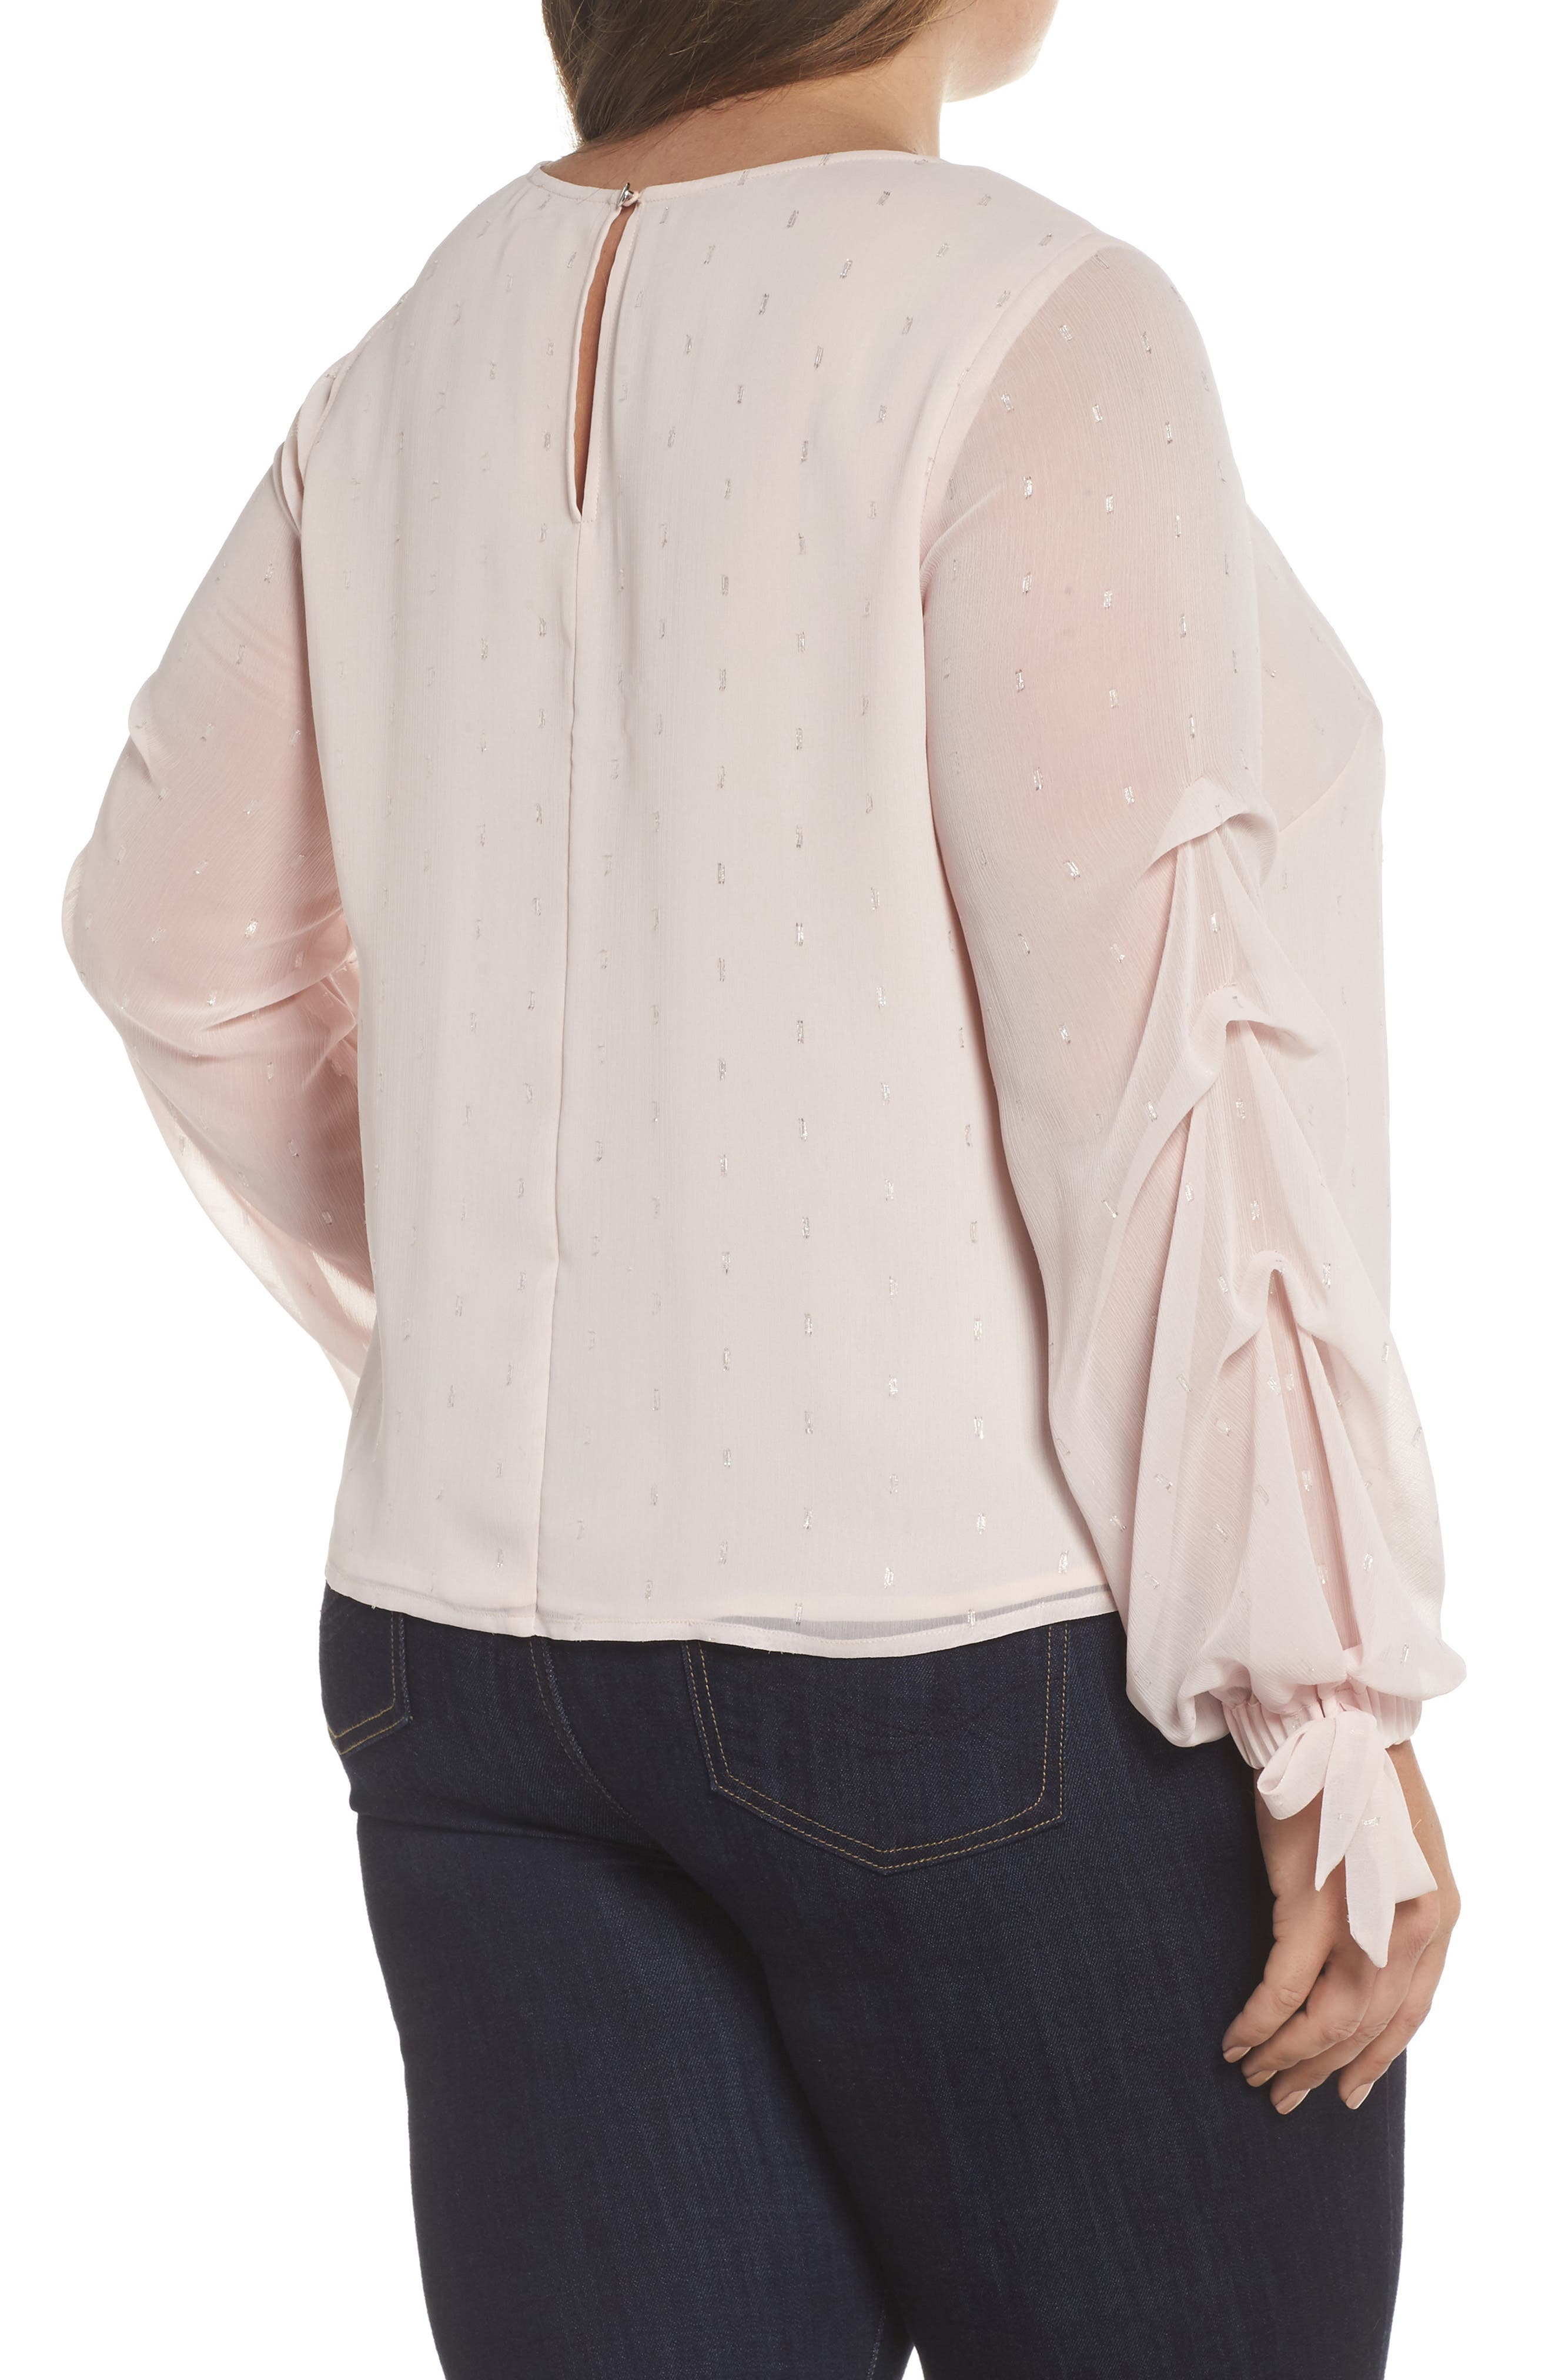 Tiered Tie Cuff Chiffon Blouse,                             Alternate thumbnail 2, color,                             PINK MIST